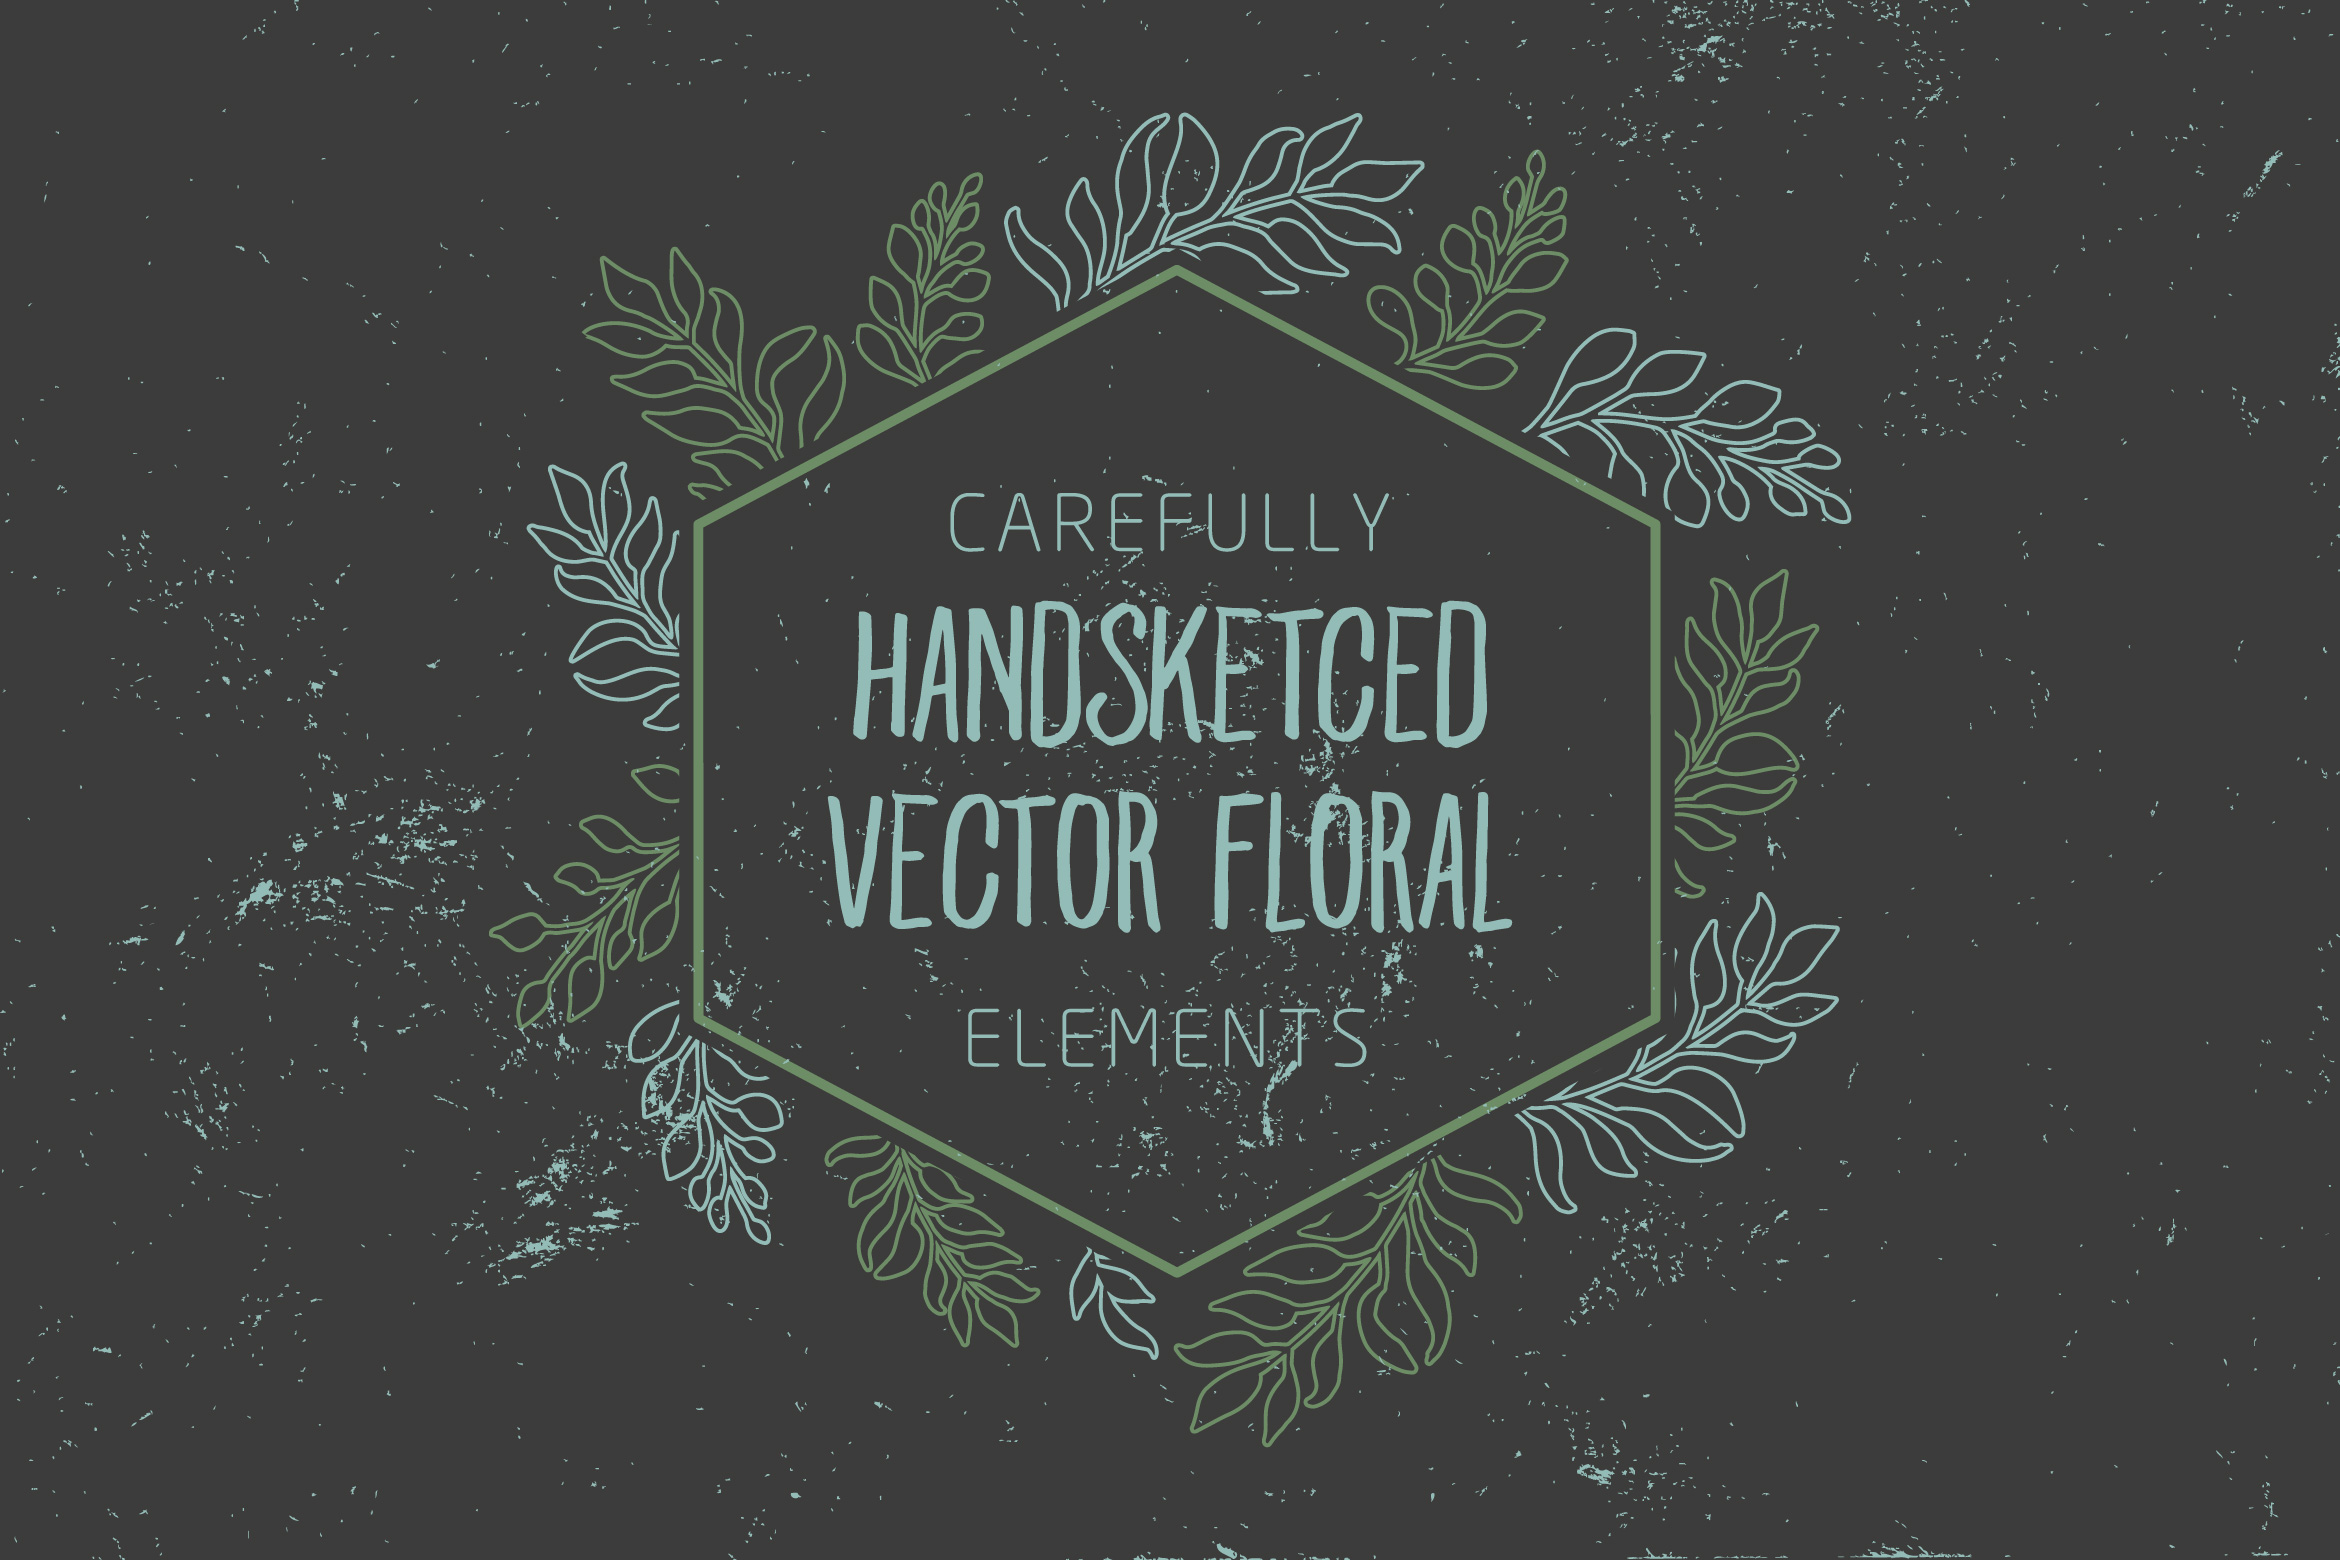 Carefully Handsketched Vector Floral Elements Graphic Illustrations By storictype - Image 1